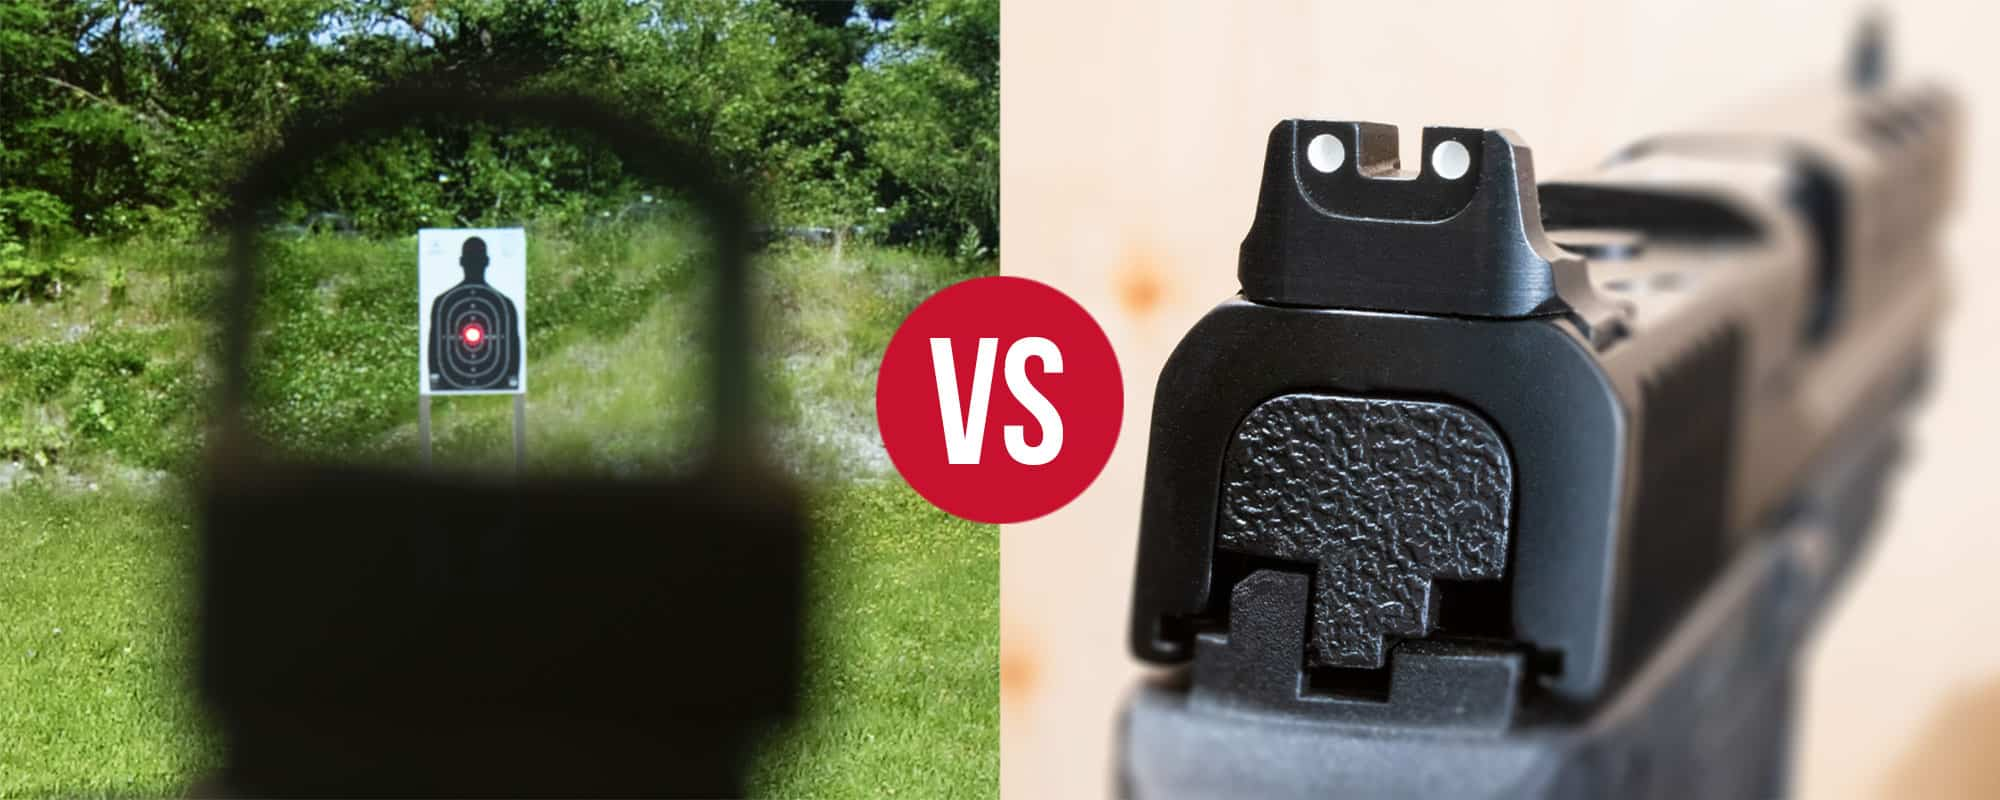 Looking through a red dot sight on the left versus a pistol with iron sights on the right